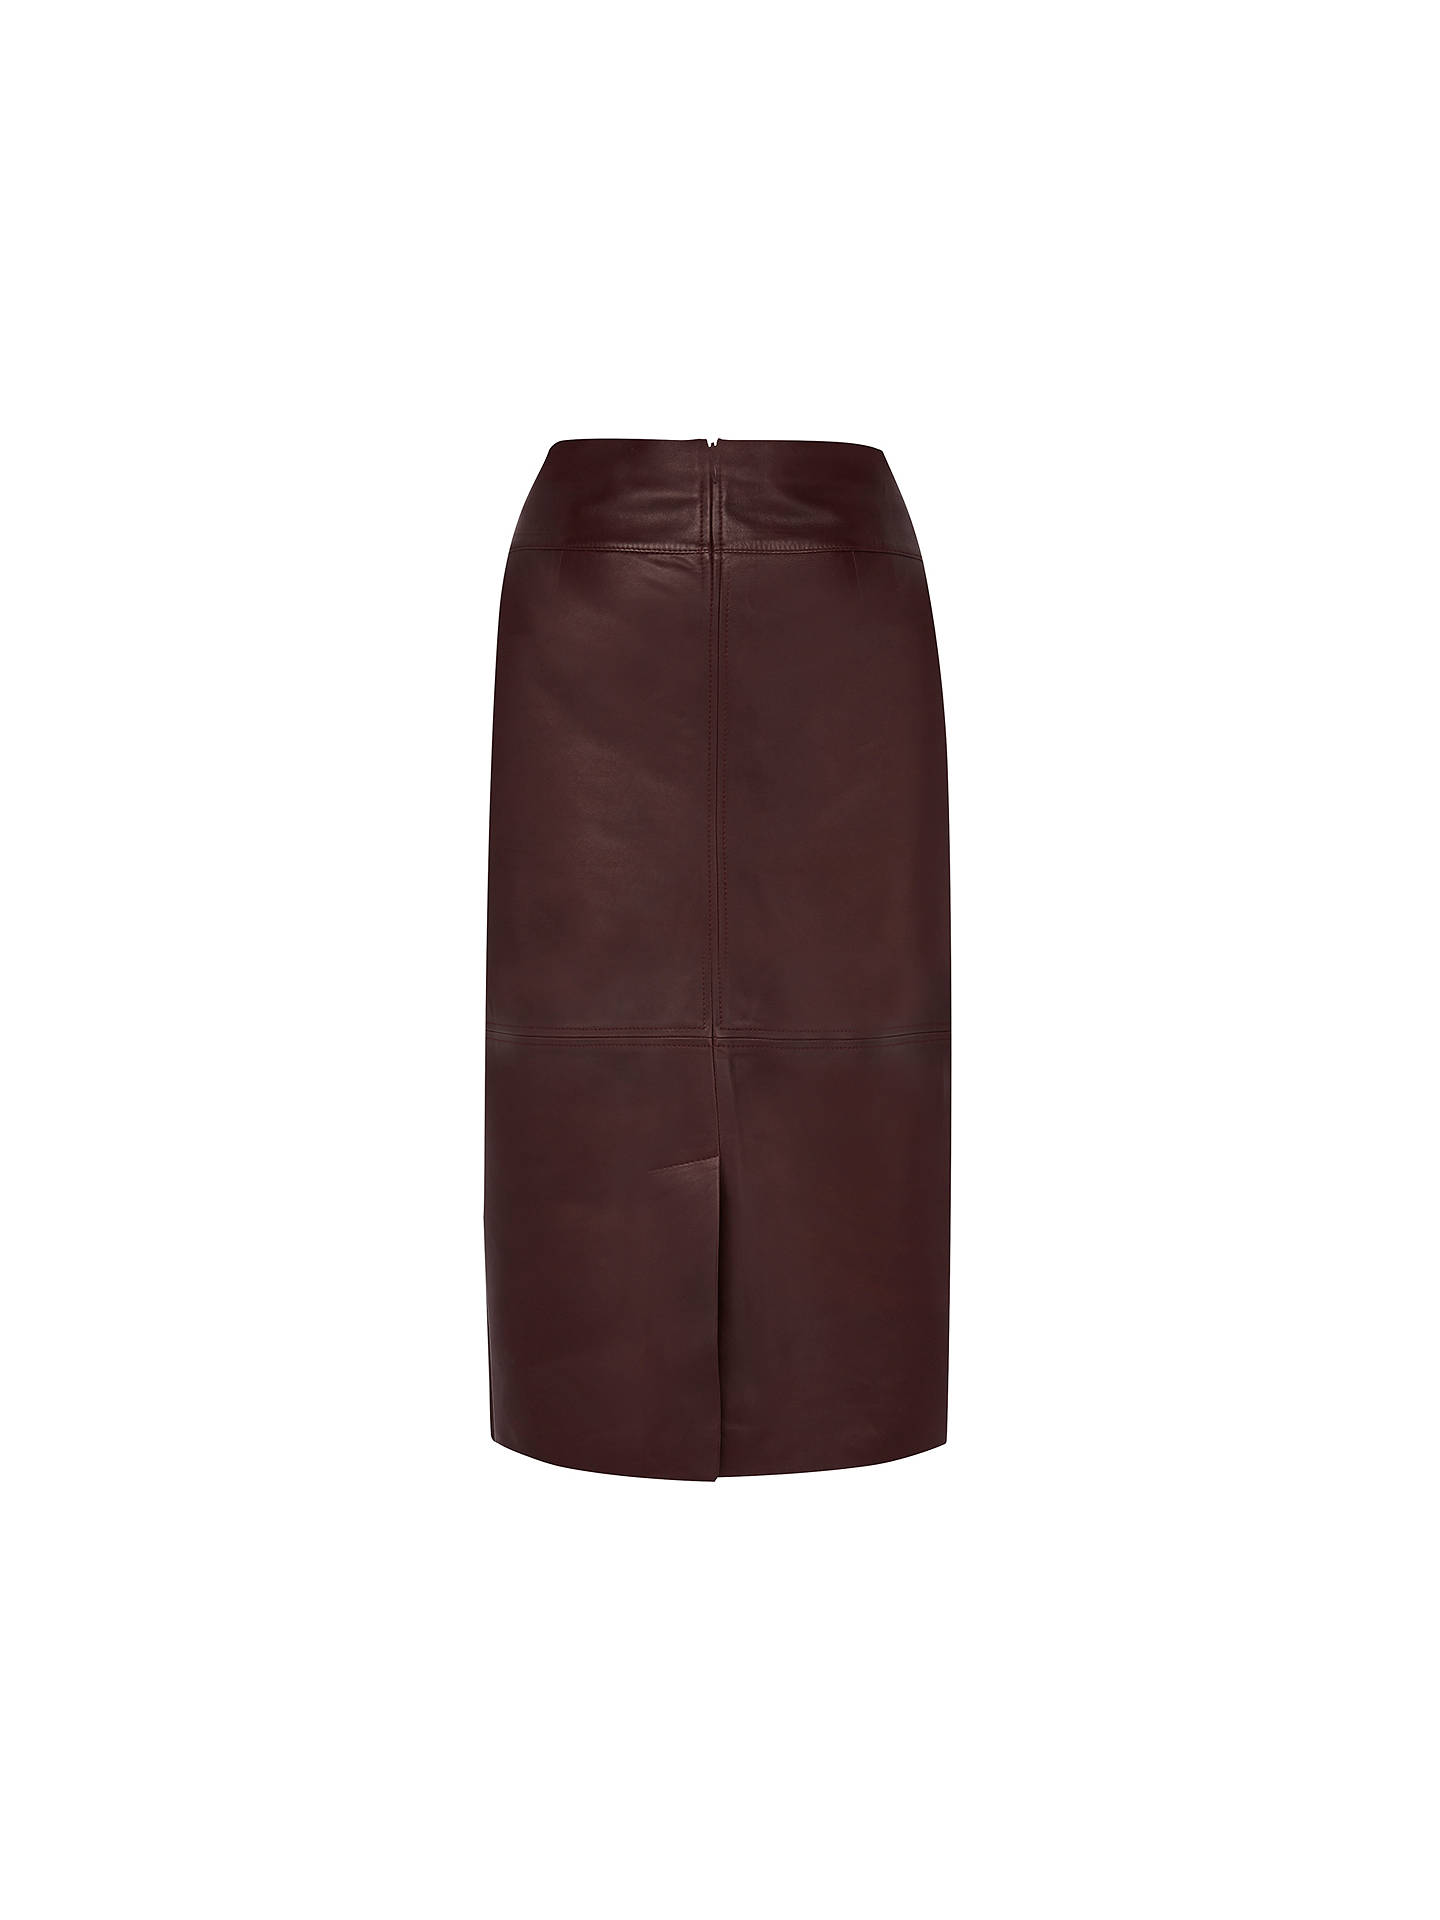 BuyViyella Leather Pencil Skirt, Burgundy, 8 Online at johnlewis.com